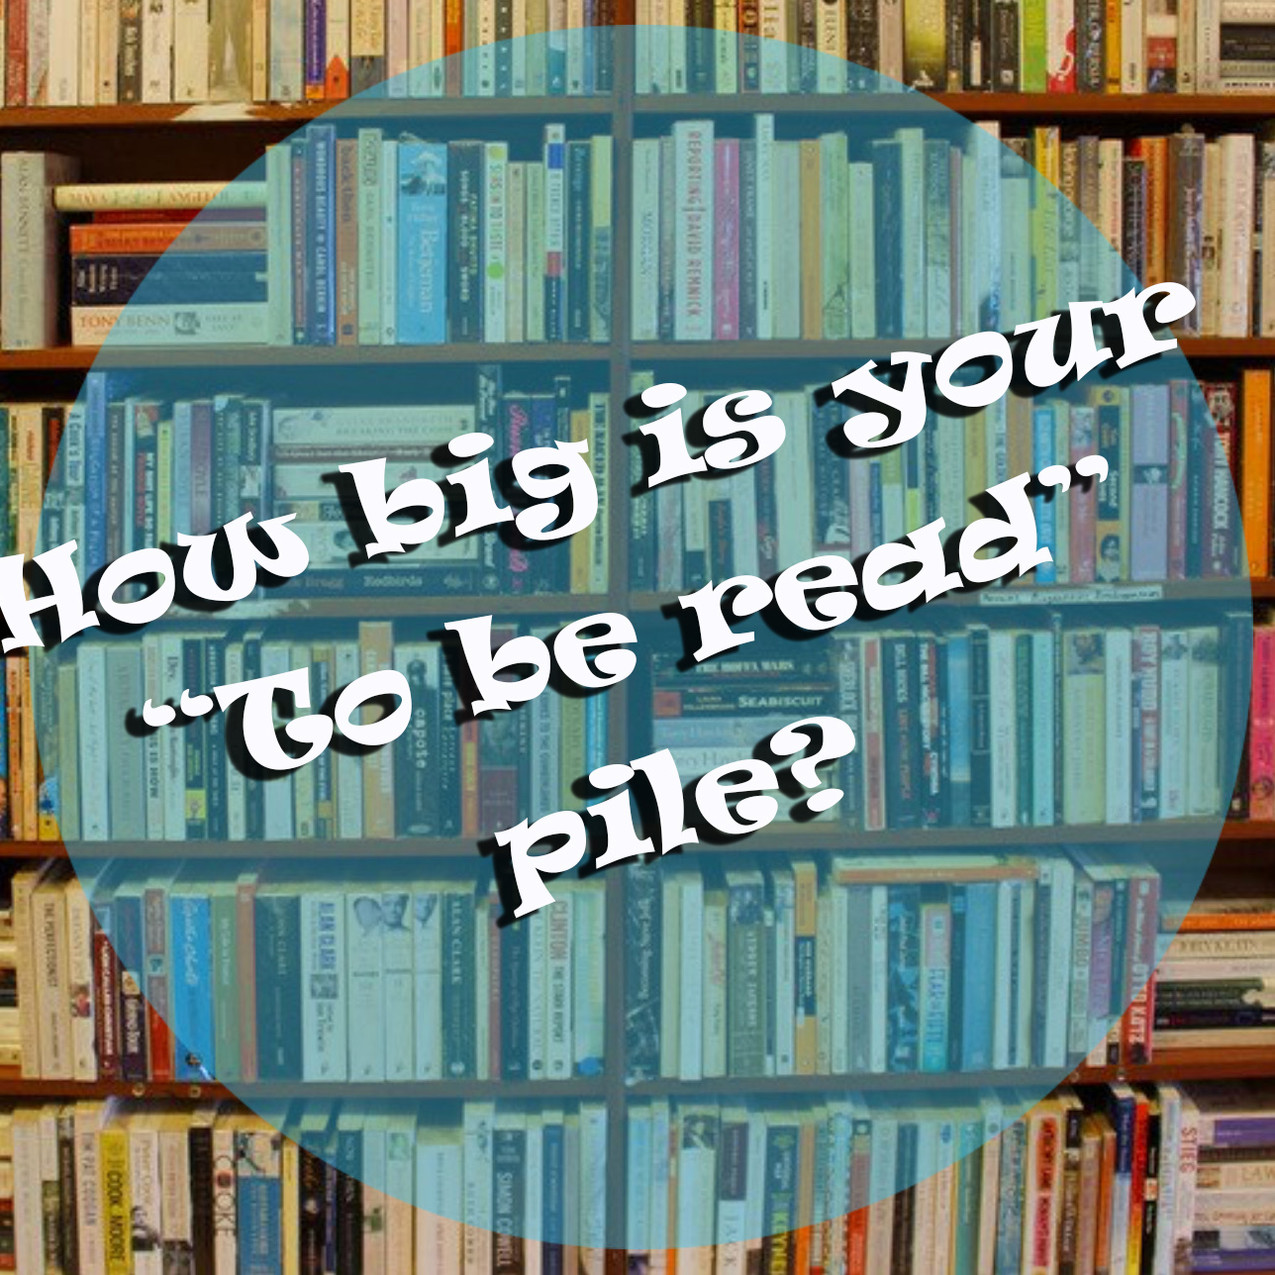 How big is your to be read pile